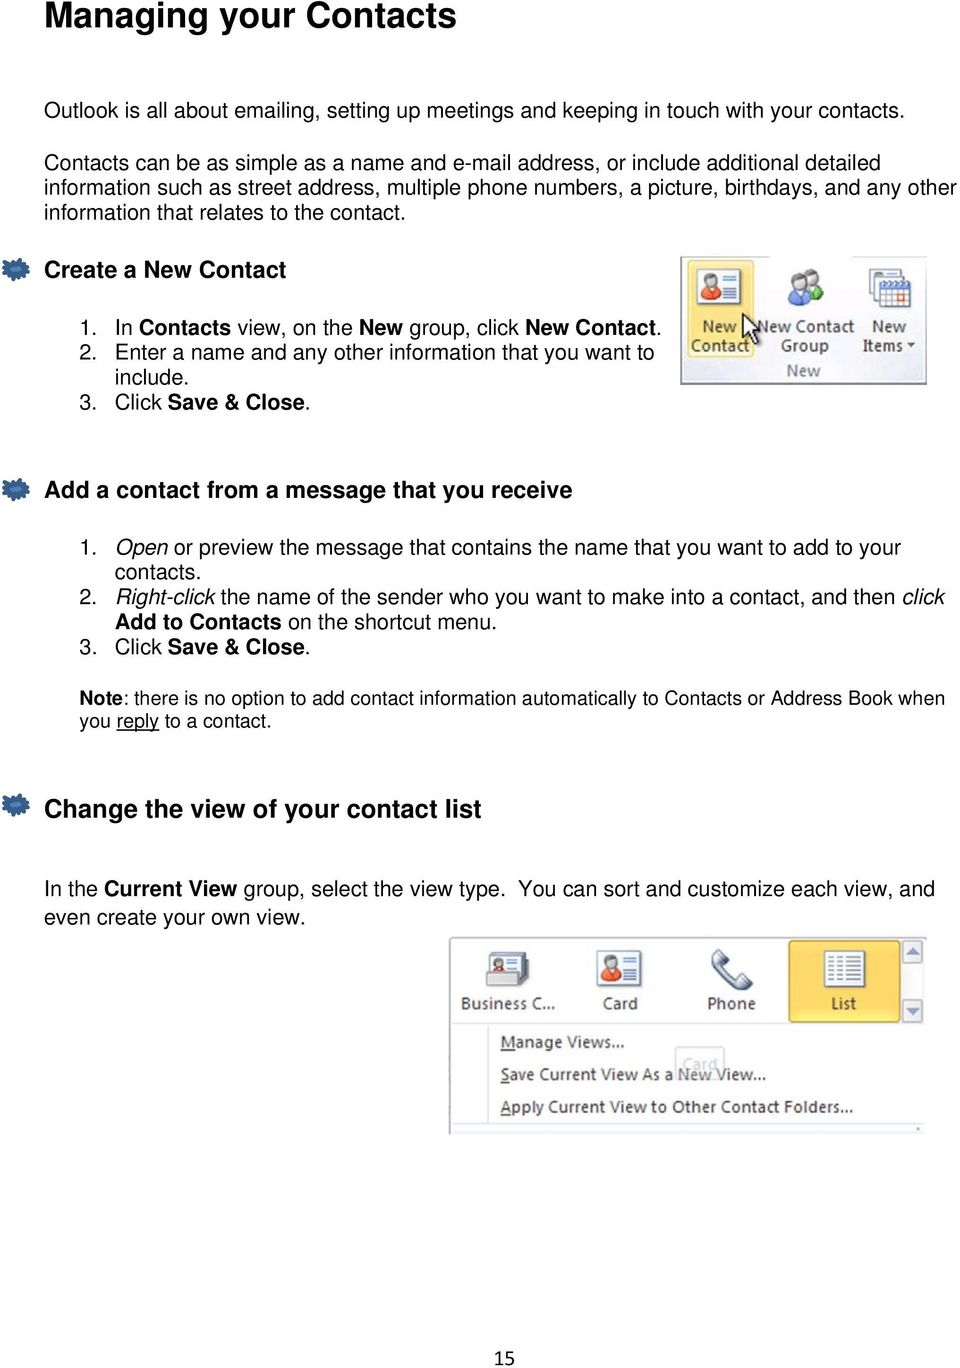 relates to the contact. Create a New Contact 1. In Contacts view, on the New group, click New Contact. 2. Enter a name and any other information that you want to include. 3. Click Save & Close.